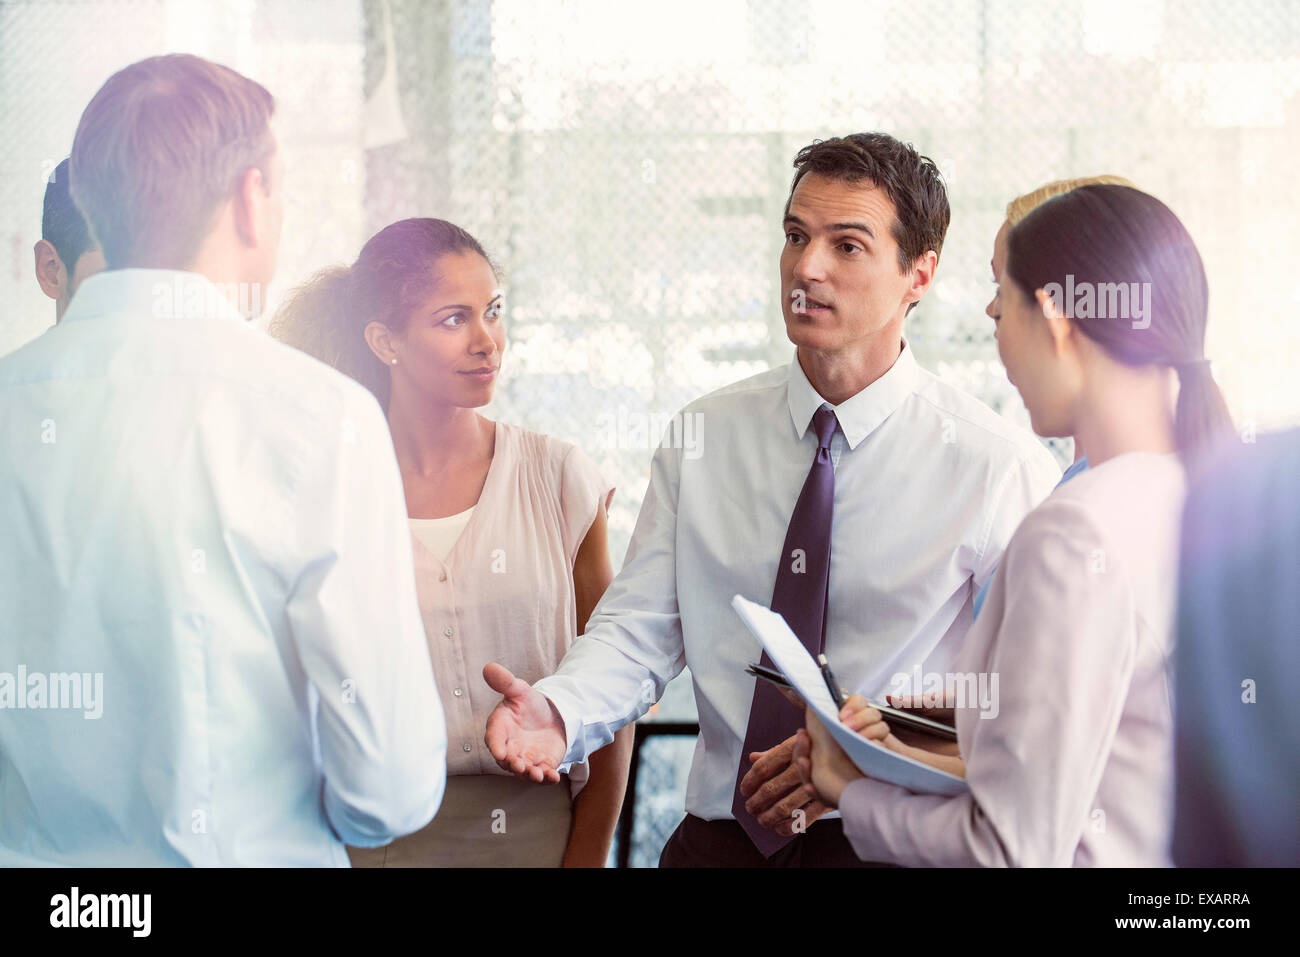 Team members receive direction from supervisor - Stock Image